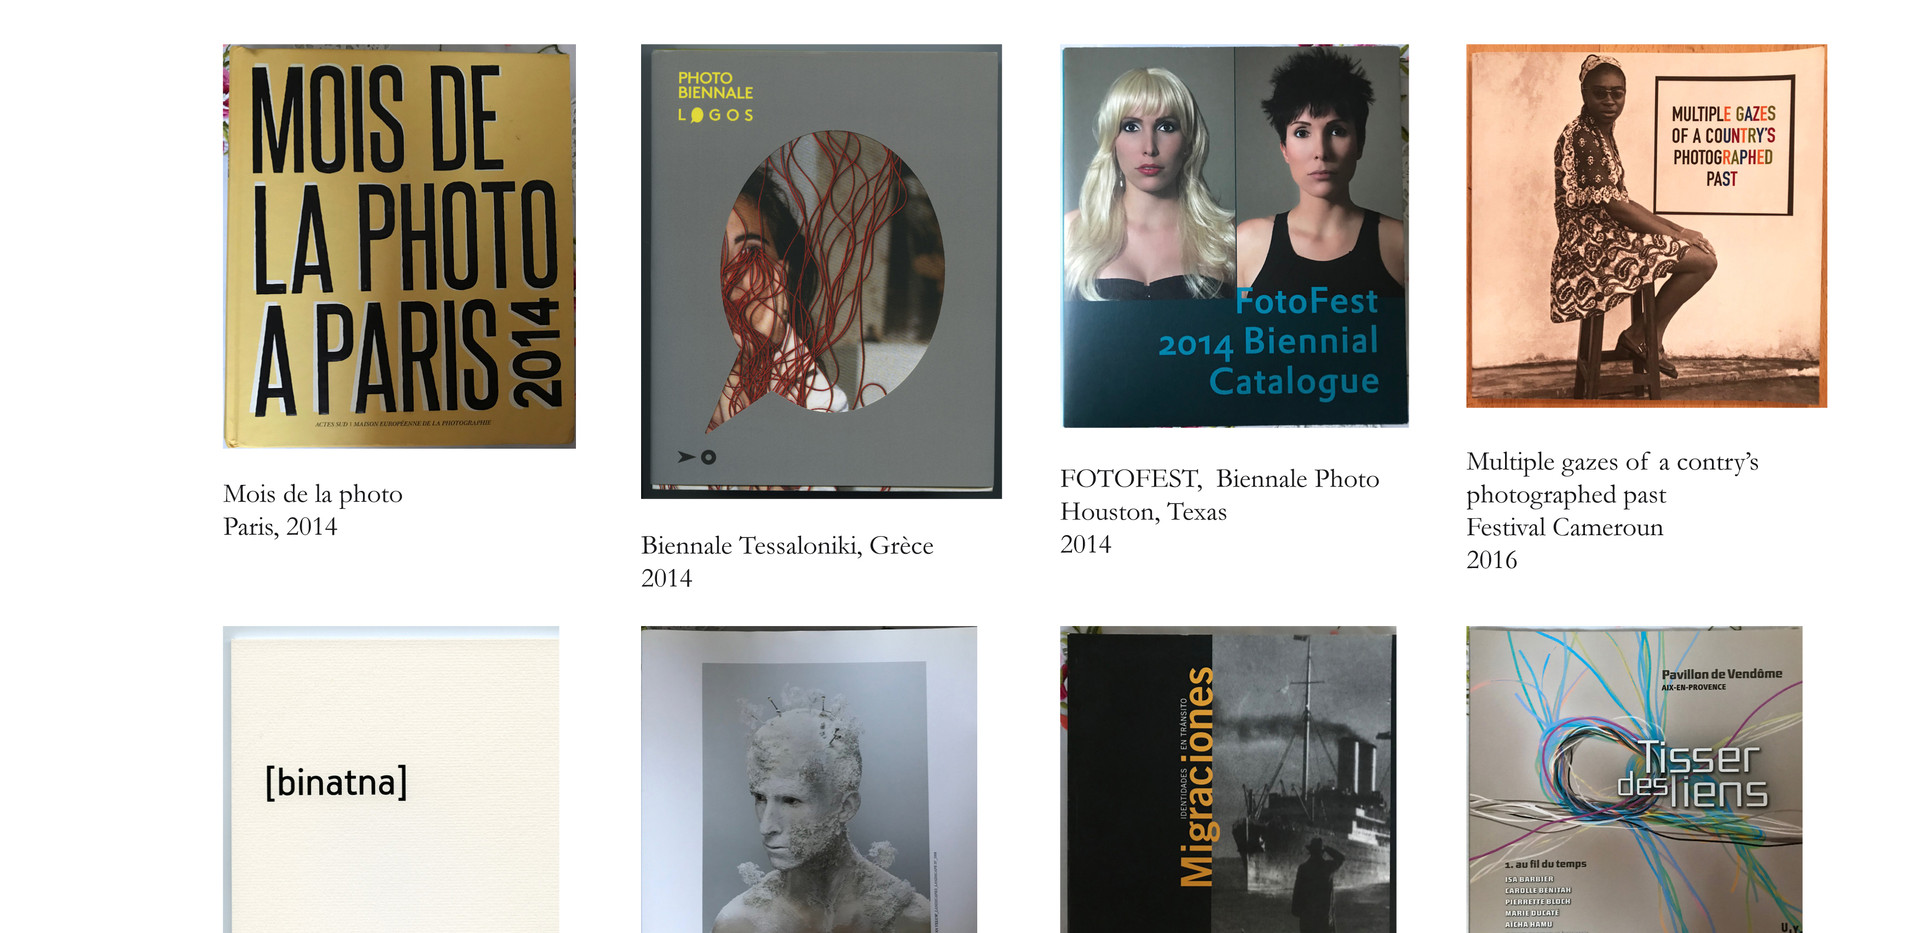 06-page livres catalogues.jpg